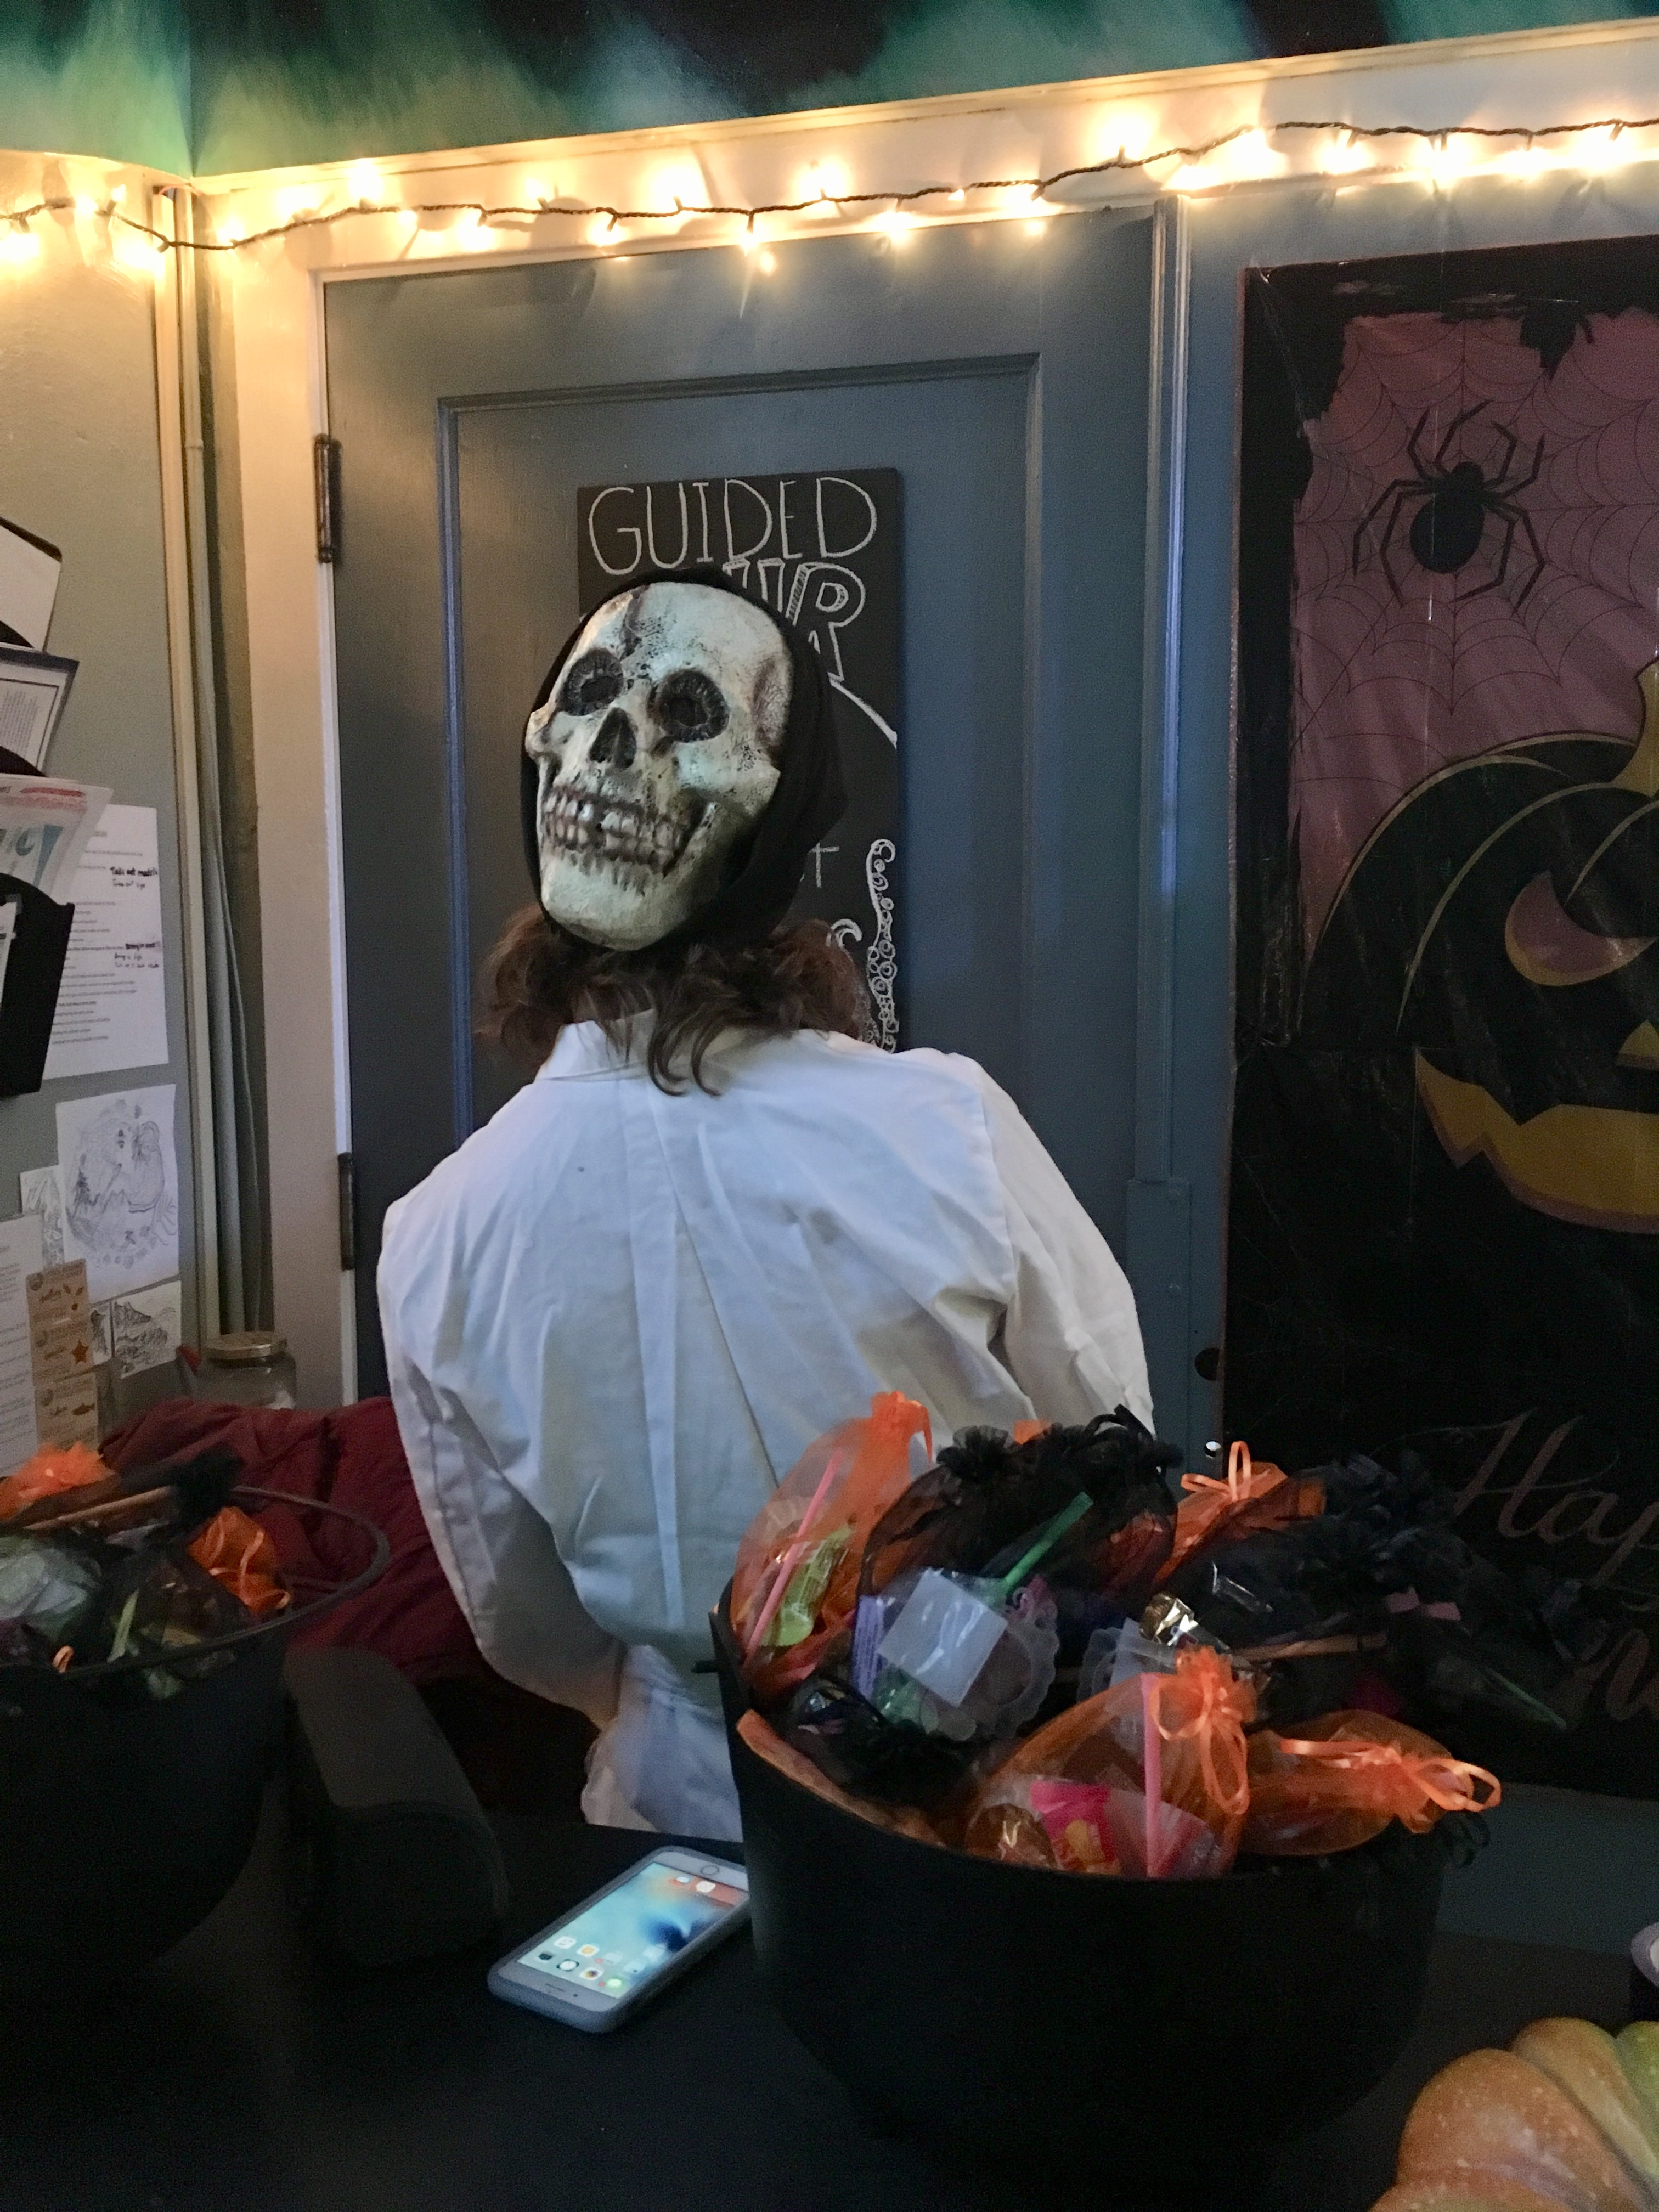 Dr. Lauer getting into the spirit of a community Halloween event as part of her Scientist in Residency Fellowship in Sitka, Alaska. Photo courtesy of Lisa Busch.